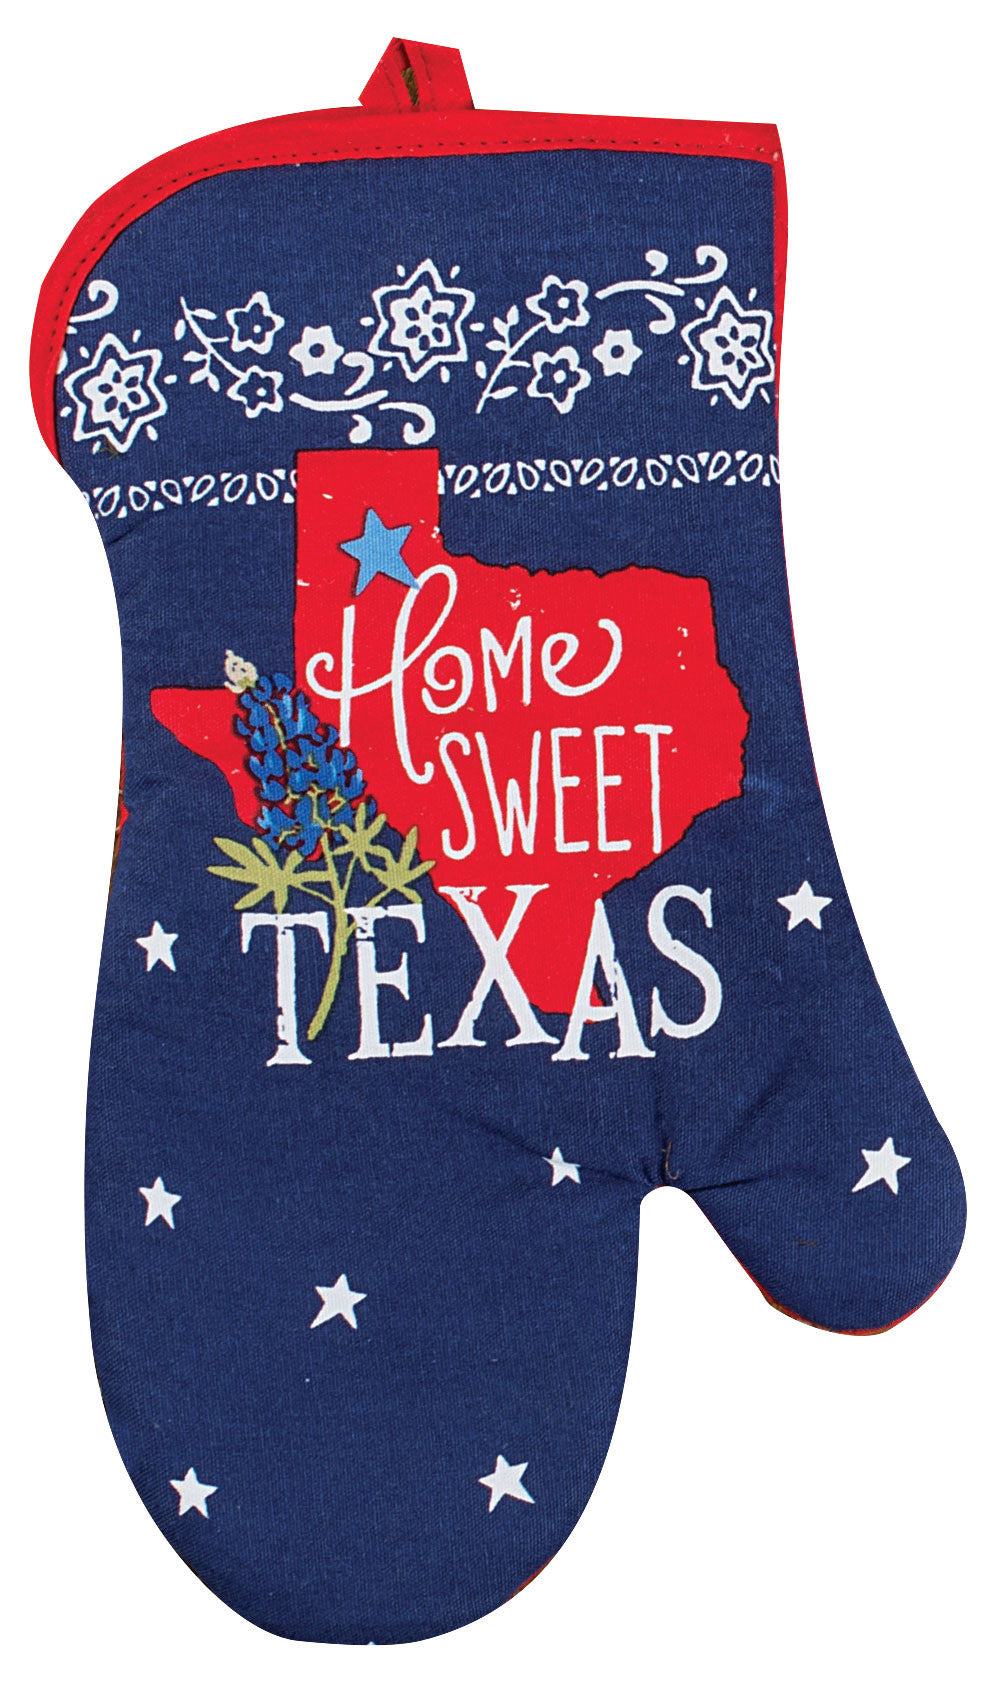 Home Sweet Texas Oven Mitt